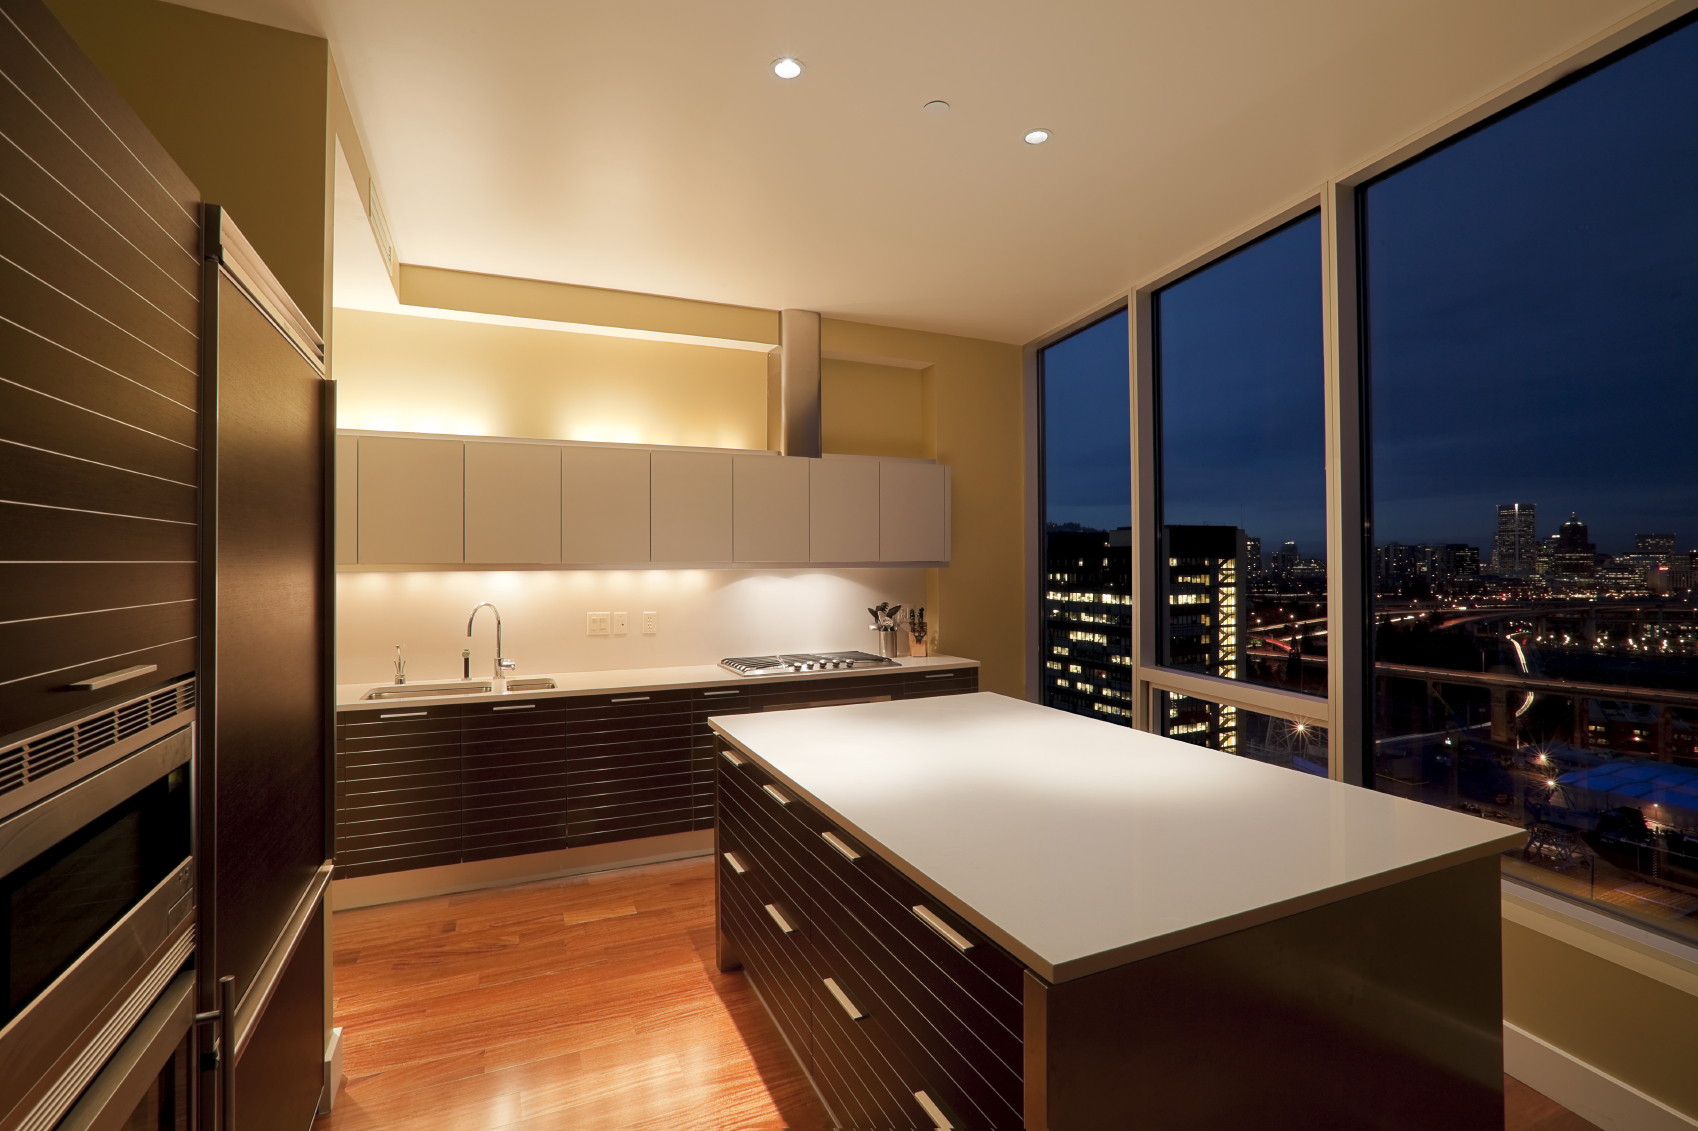 Unique modern touches like the horizontal lined cabinetry under glossy white upper cupboards in this kitchen featuring floor to ceiling view of cityscape next to large island.